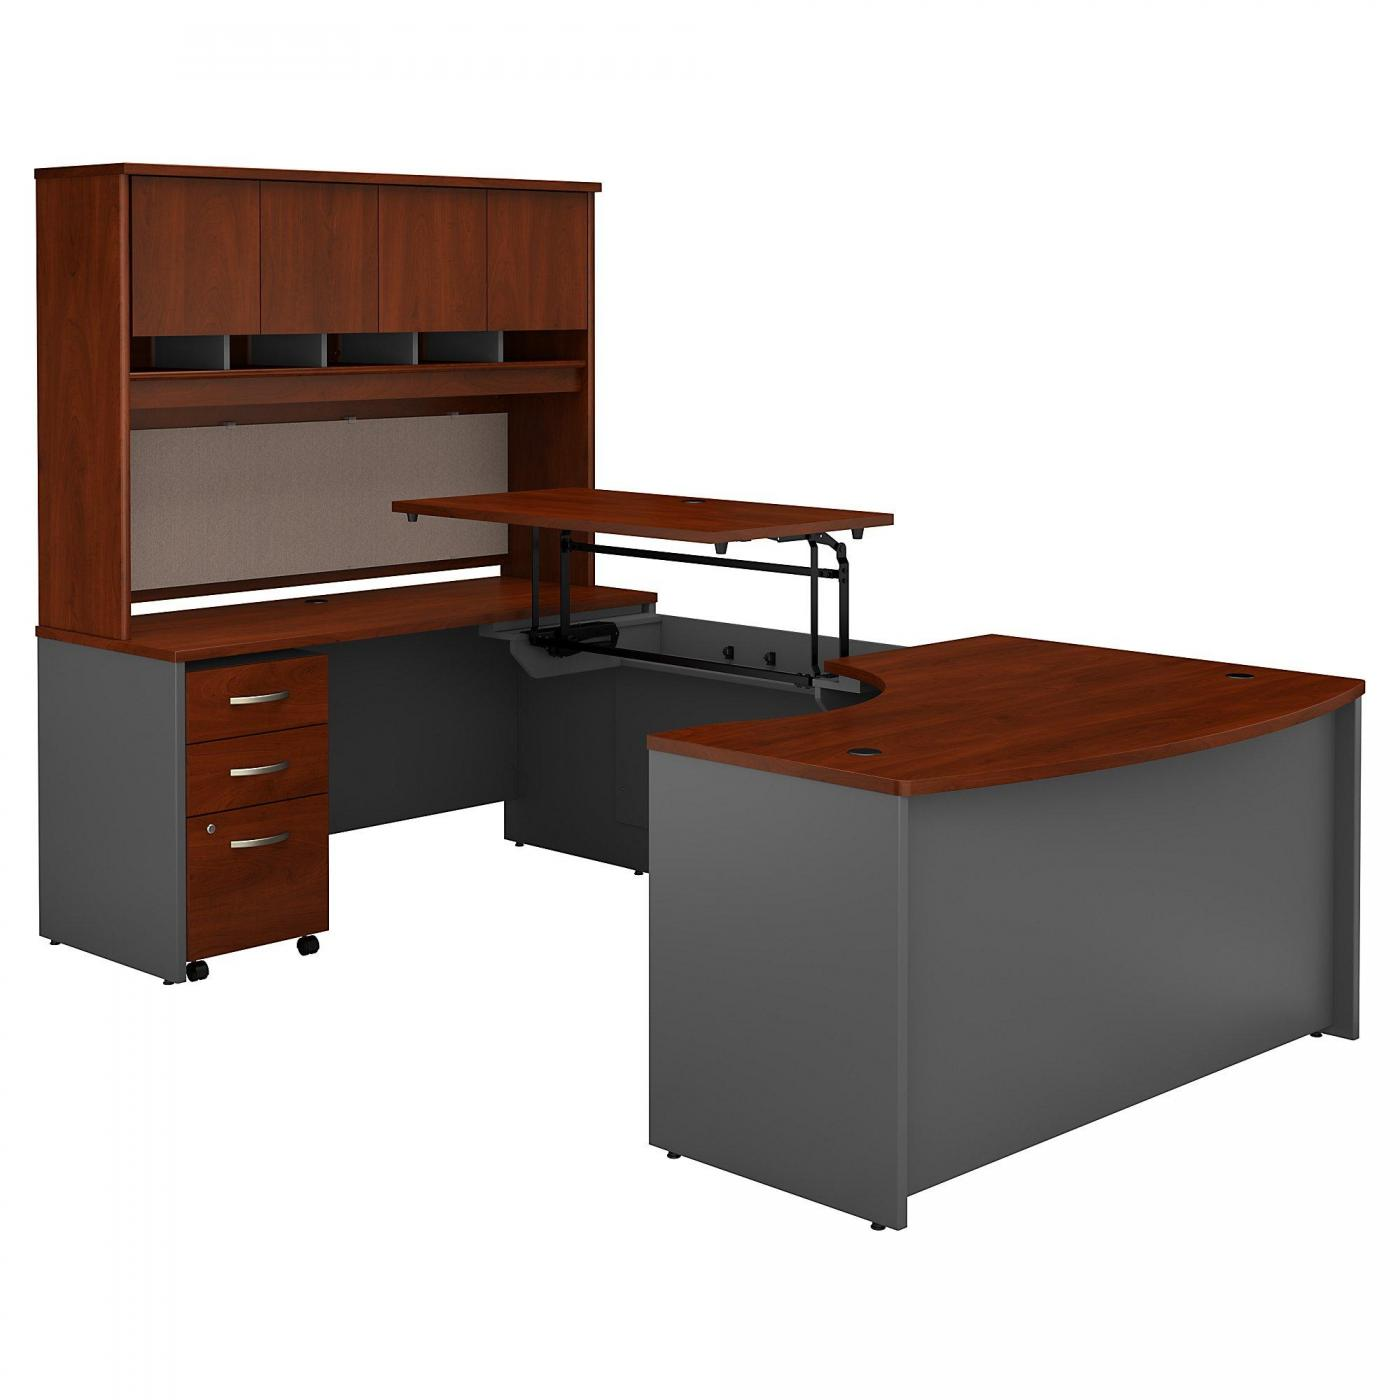 <font color=#c60><b>BUSH BUSINESS FURNITURE SERIES C 60W X 43D RIGHT HAND 3 POSITION SIT TO STAND U SHAPED DESK WITH HUTCH AND MOBILE FILE CABINET. FREE SHIPPING. VIDEO:</font></b>